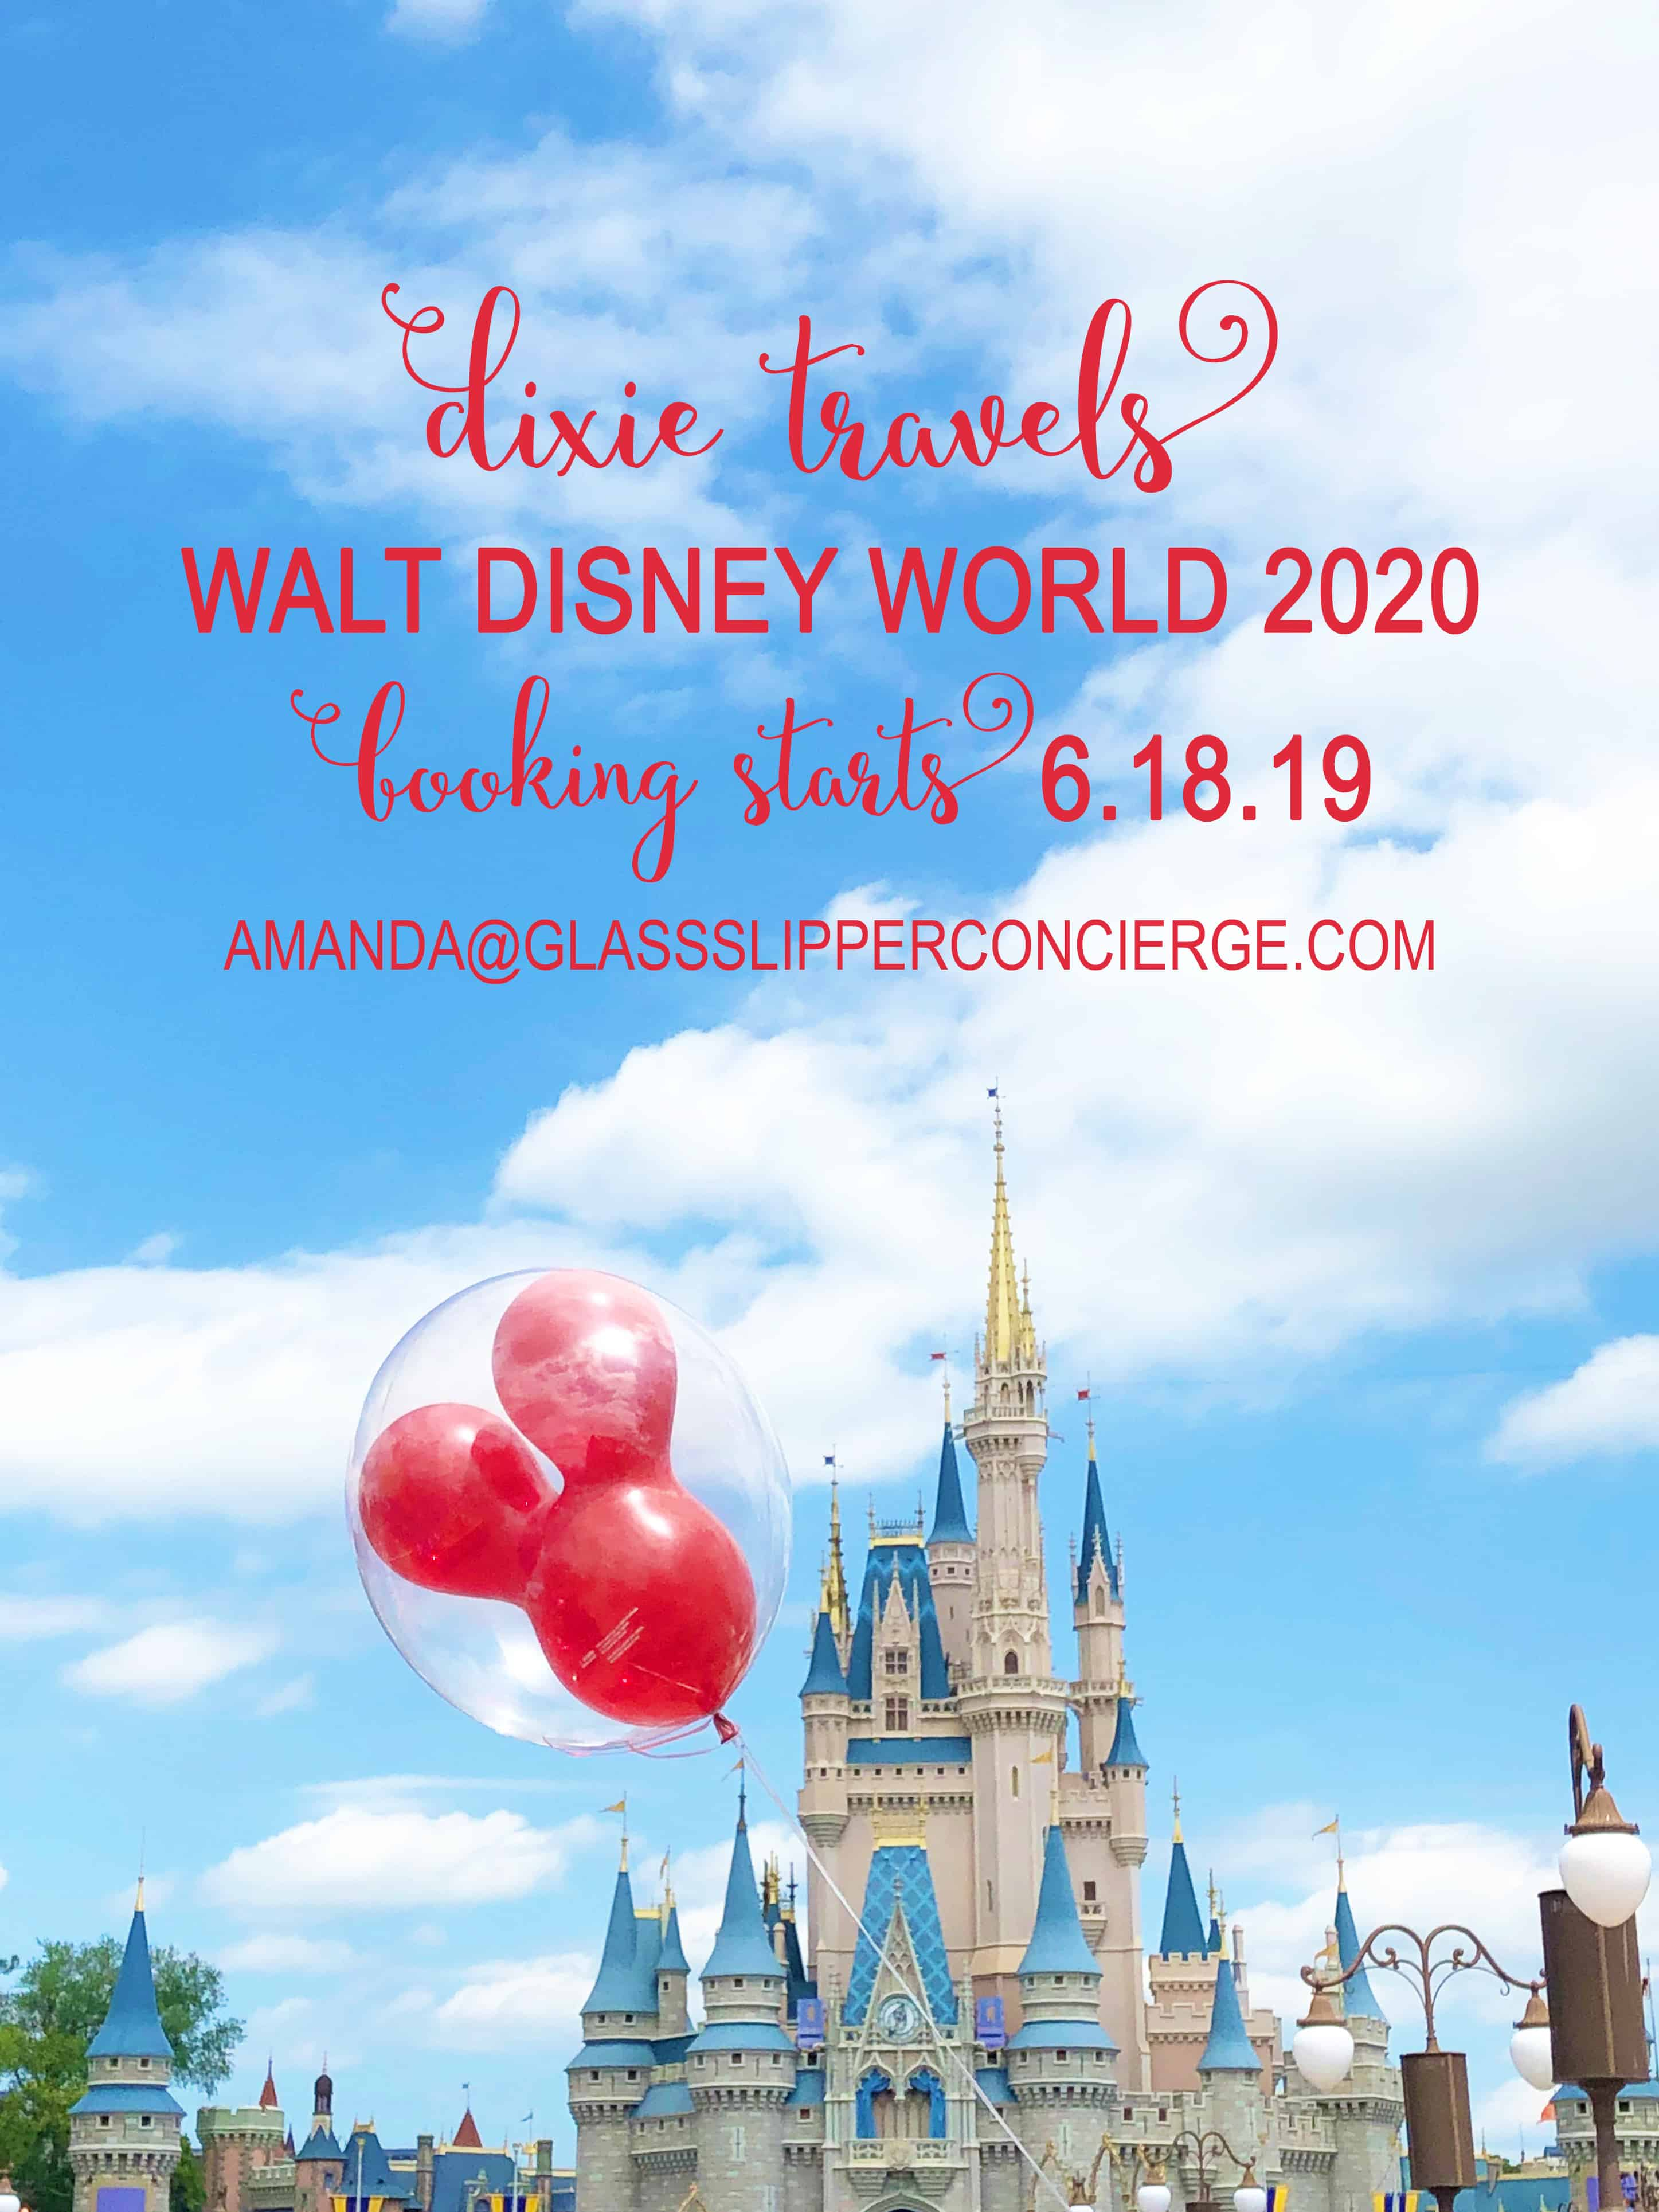 Events At Disney World 2020.Walt Disney World 2020 Booking Opens June 18 Dixie Delights